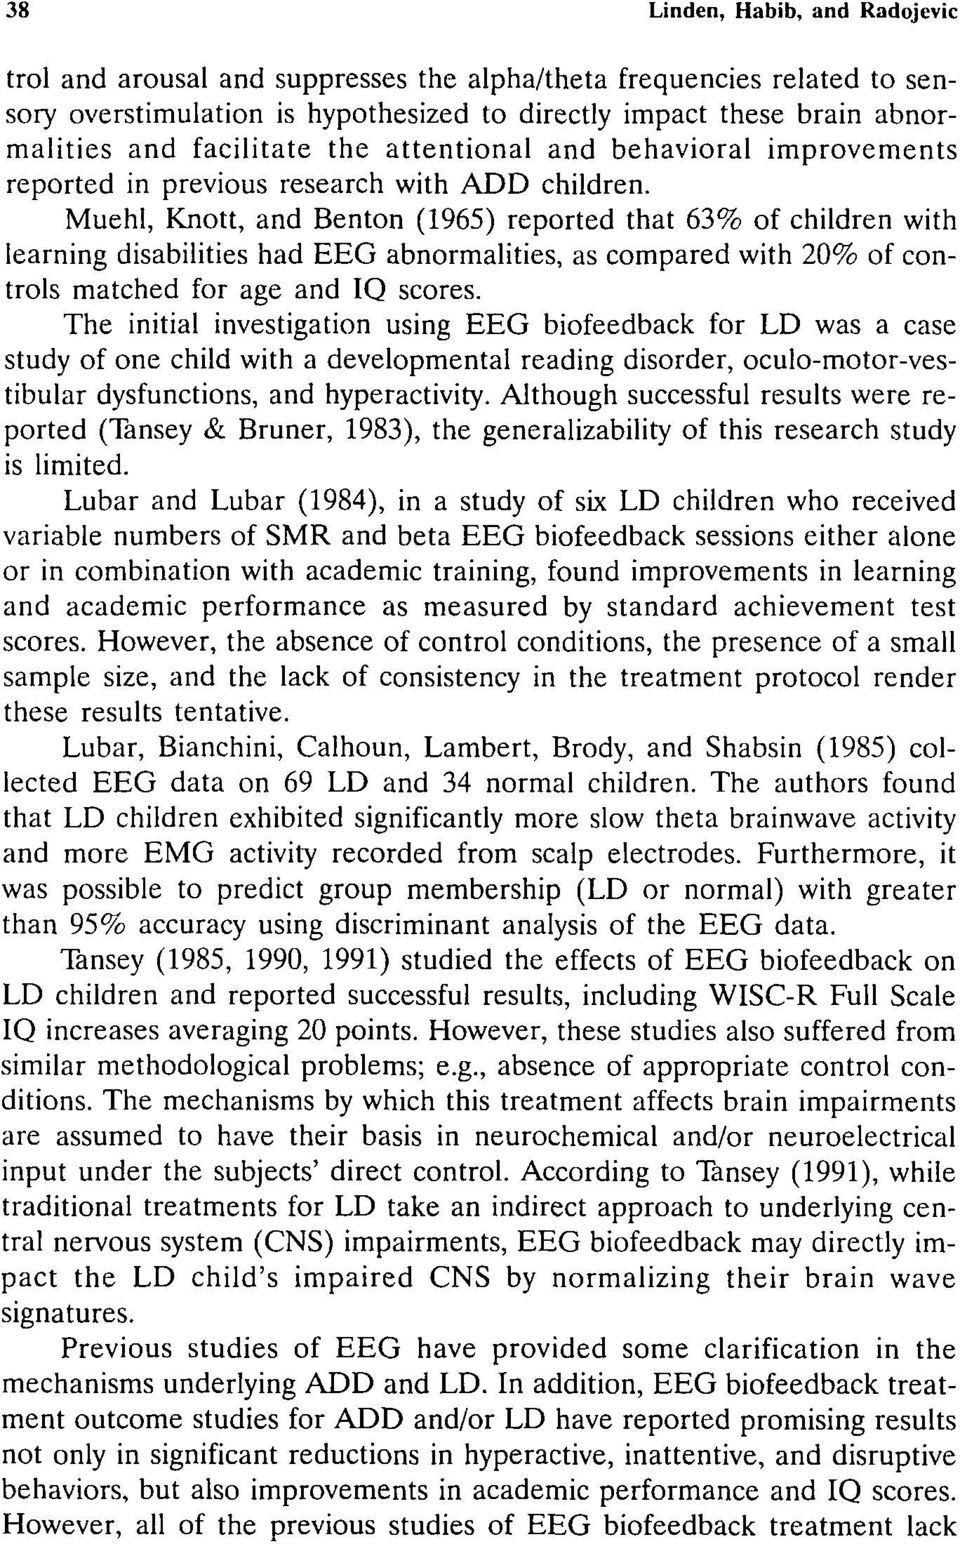 Muehl, Knott, and Benton (1965) reported that 63% of children with learning disabilities had EEG abnormalities, as compared with 20% of controls matched for age and IQ scores.